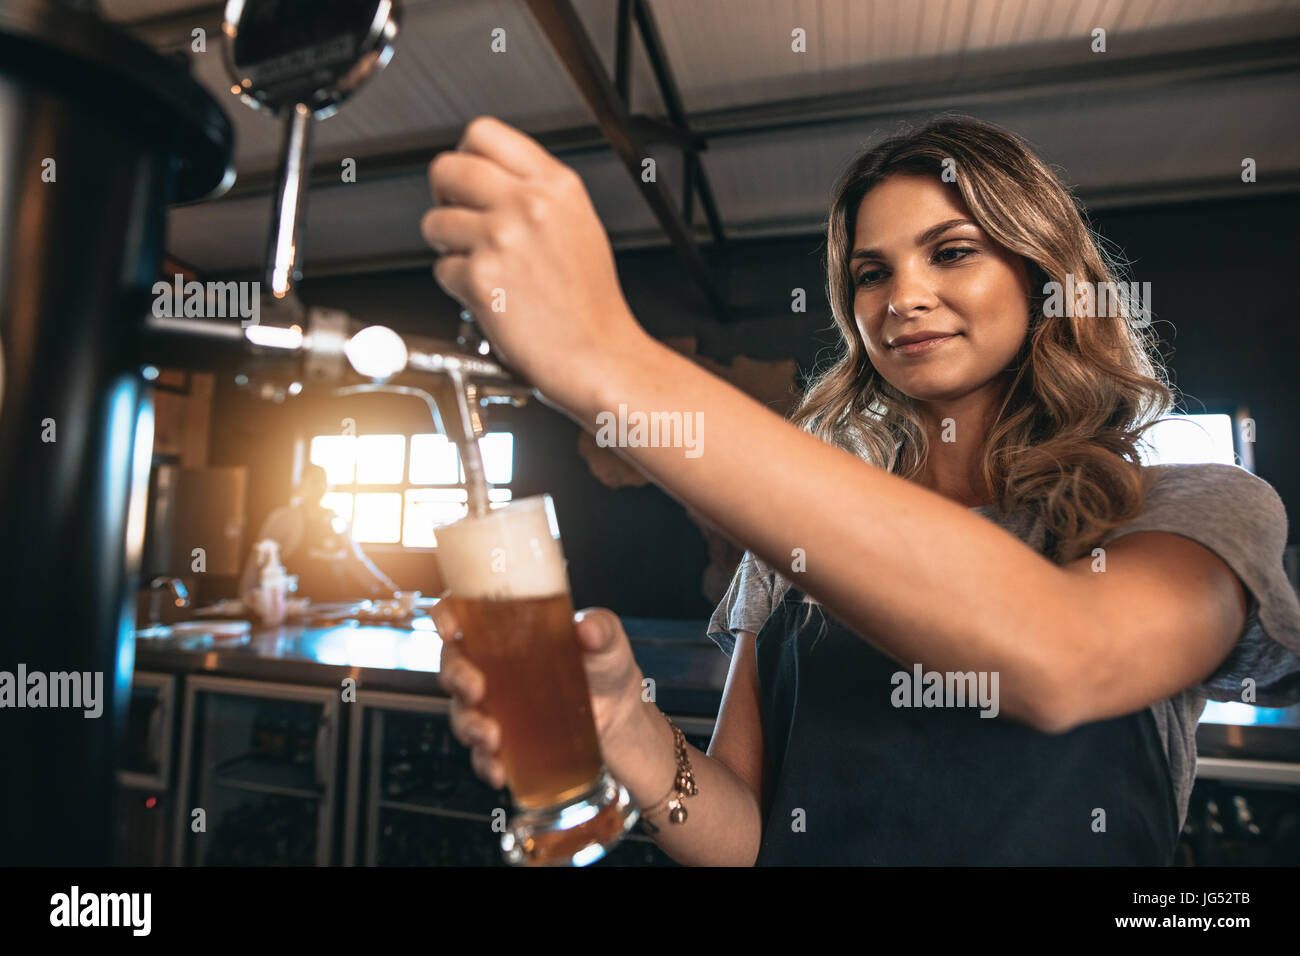 The Brewery Tap Stockfotos & The Brewery Tap Bilder - Alamy